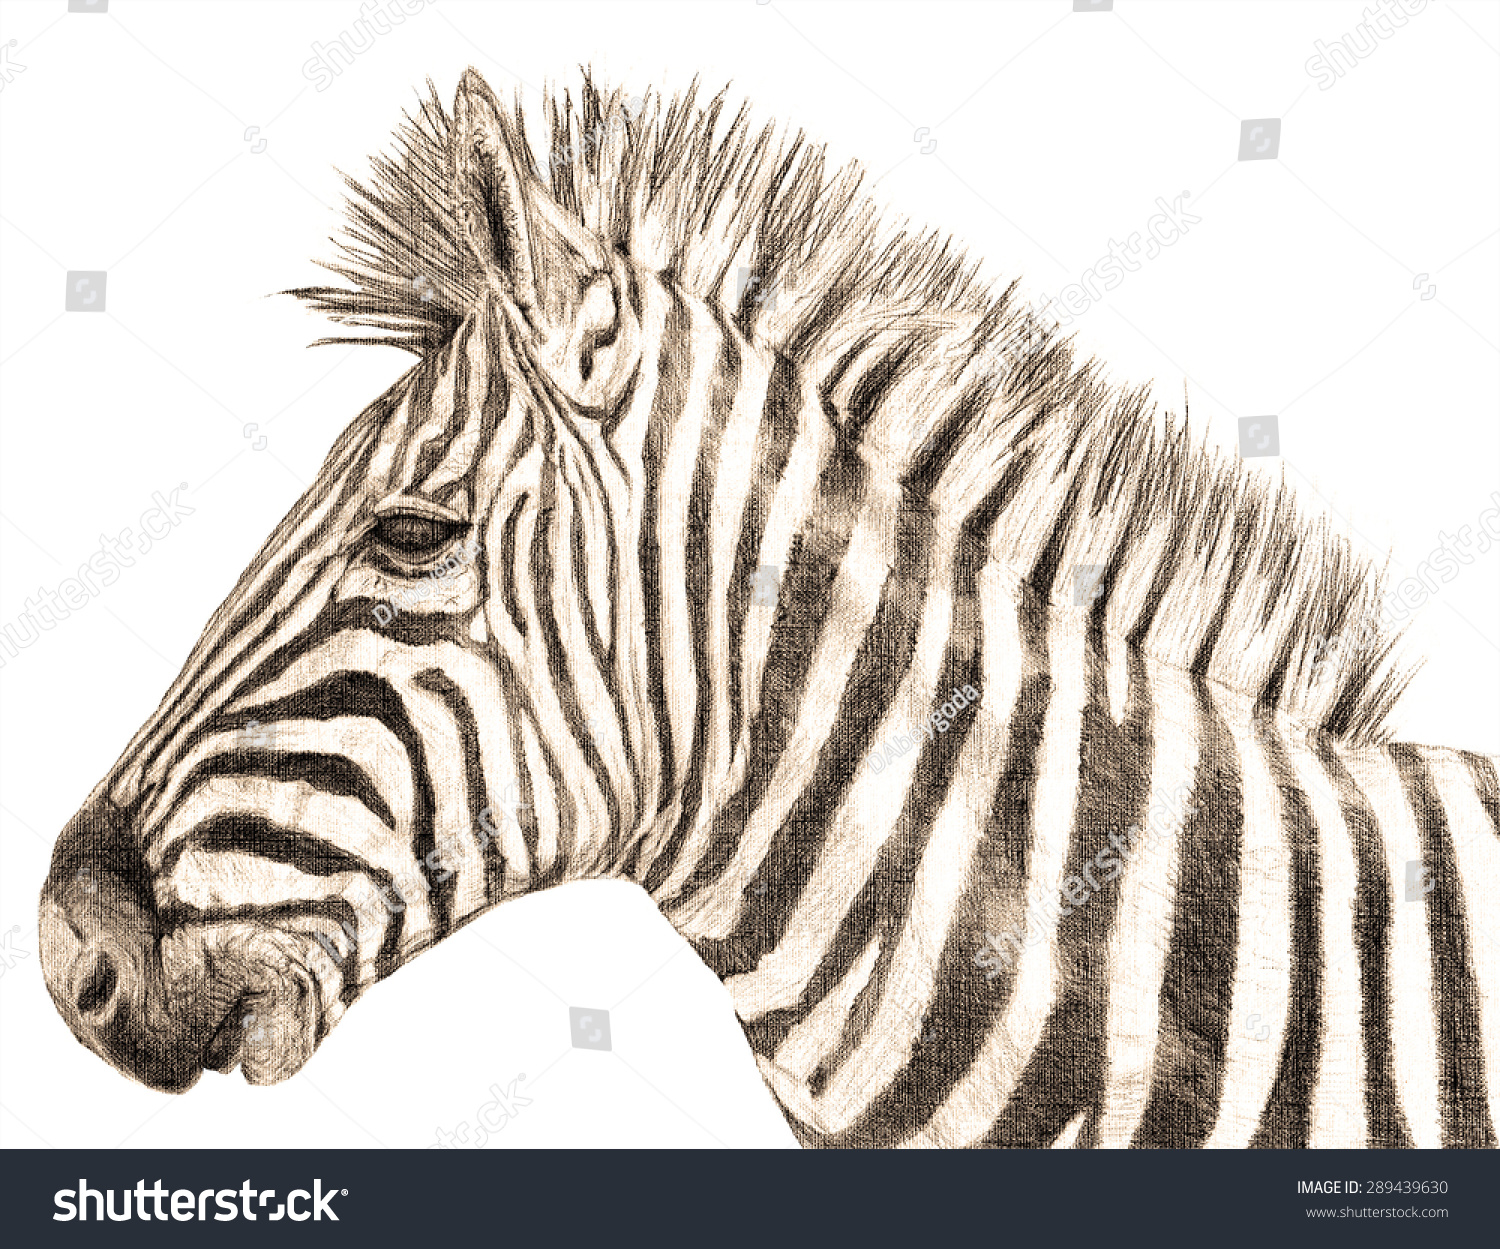 Hand drawn zebra side profile close up isolated on white realistic pencil drawing